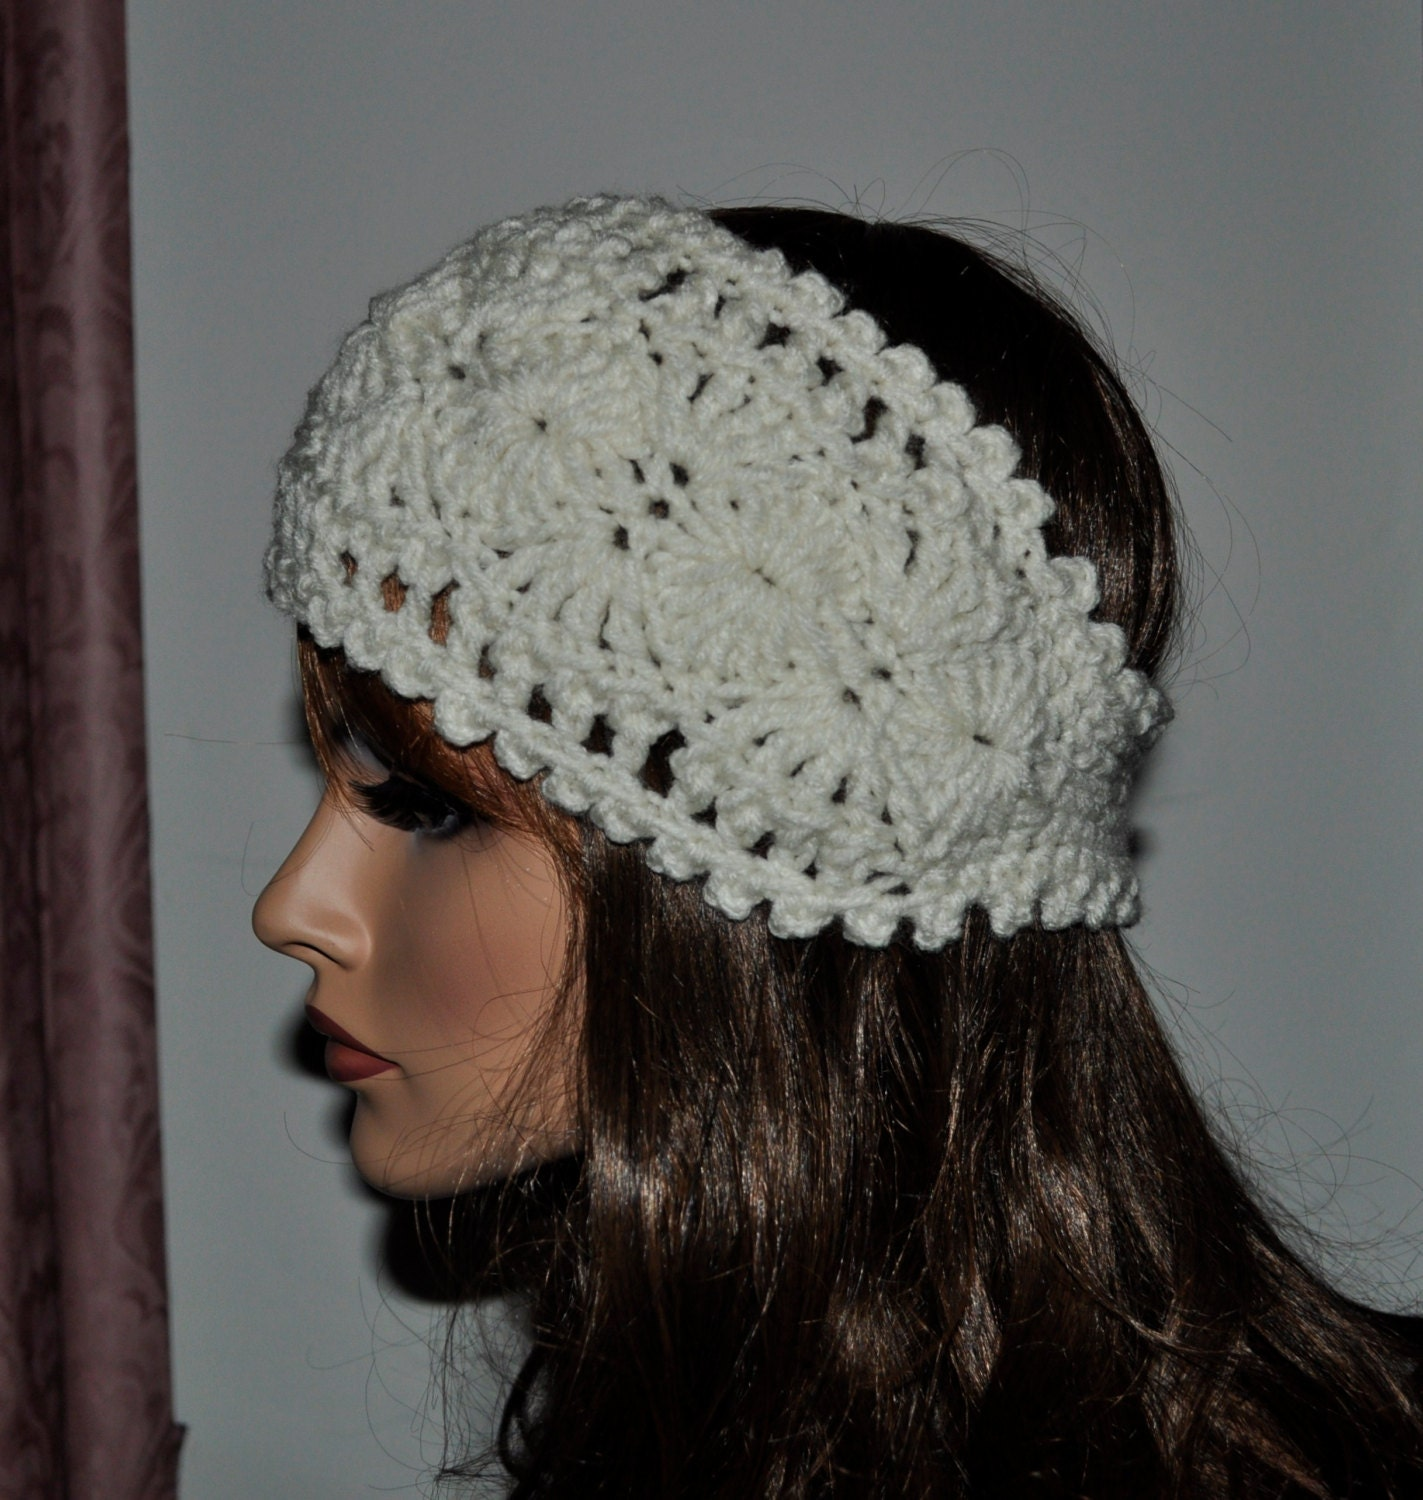 Free Crochet Pattern Headband Ear Warmer Button : Crochet Ear Warmer Headband 100 percent Handmade Accessory